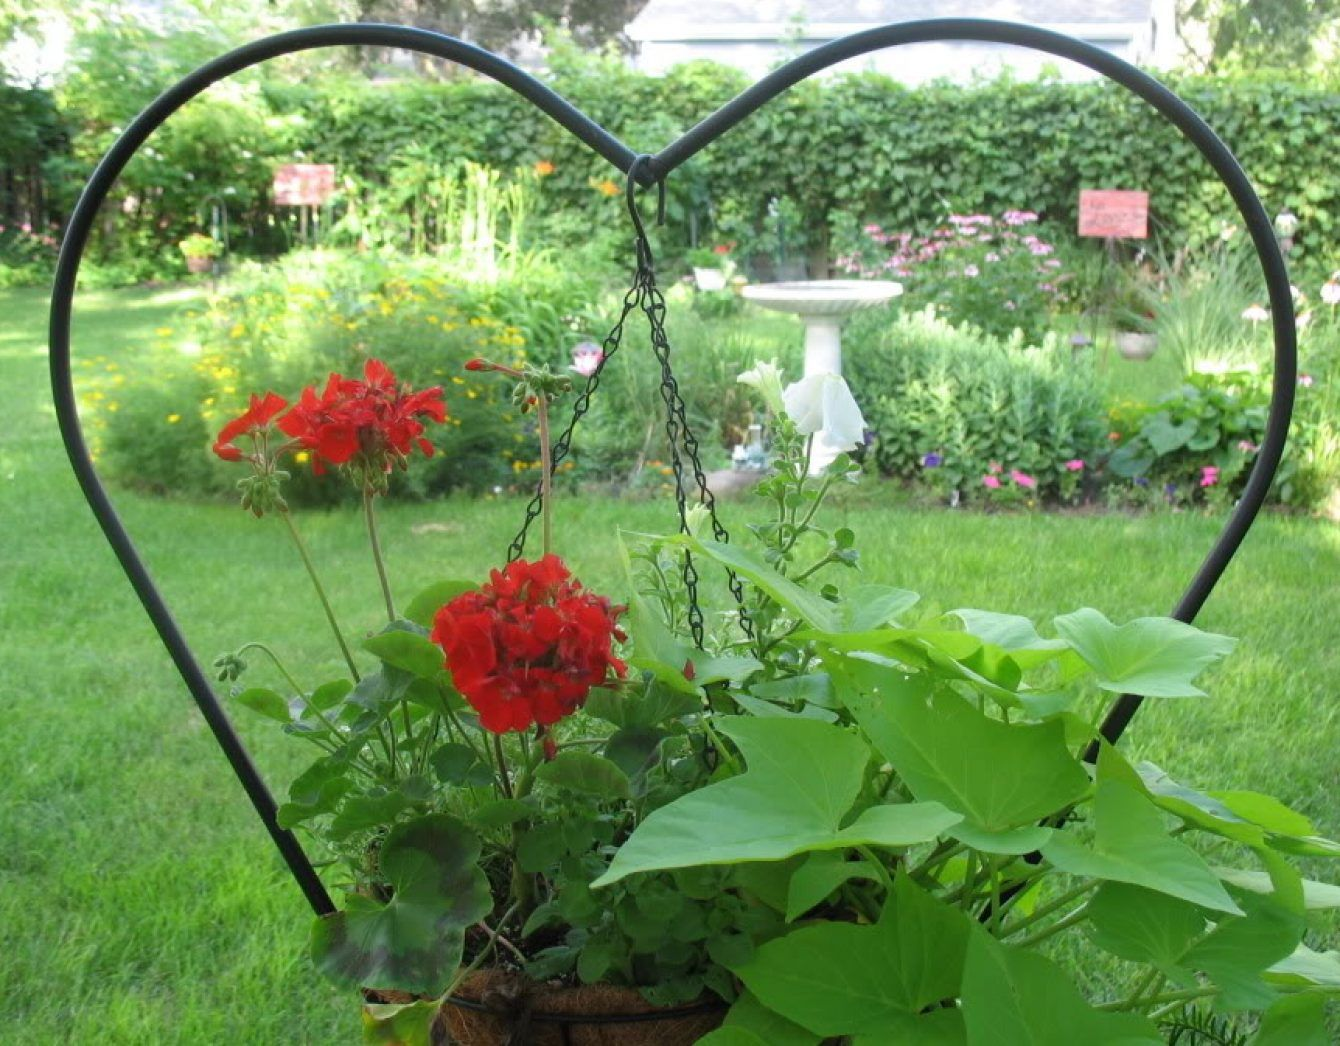 Diggin' In: Gardening with children produces lifelong passion and lifetime memories - http://beautifulgardenideas.com/beautiful-garden-ideas/diggin-in-gardening-with-children-produces-lifelong-passion-and-lifetime-memories/